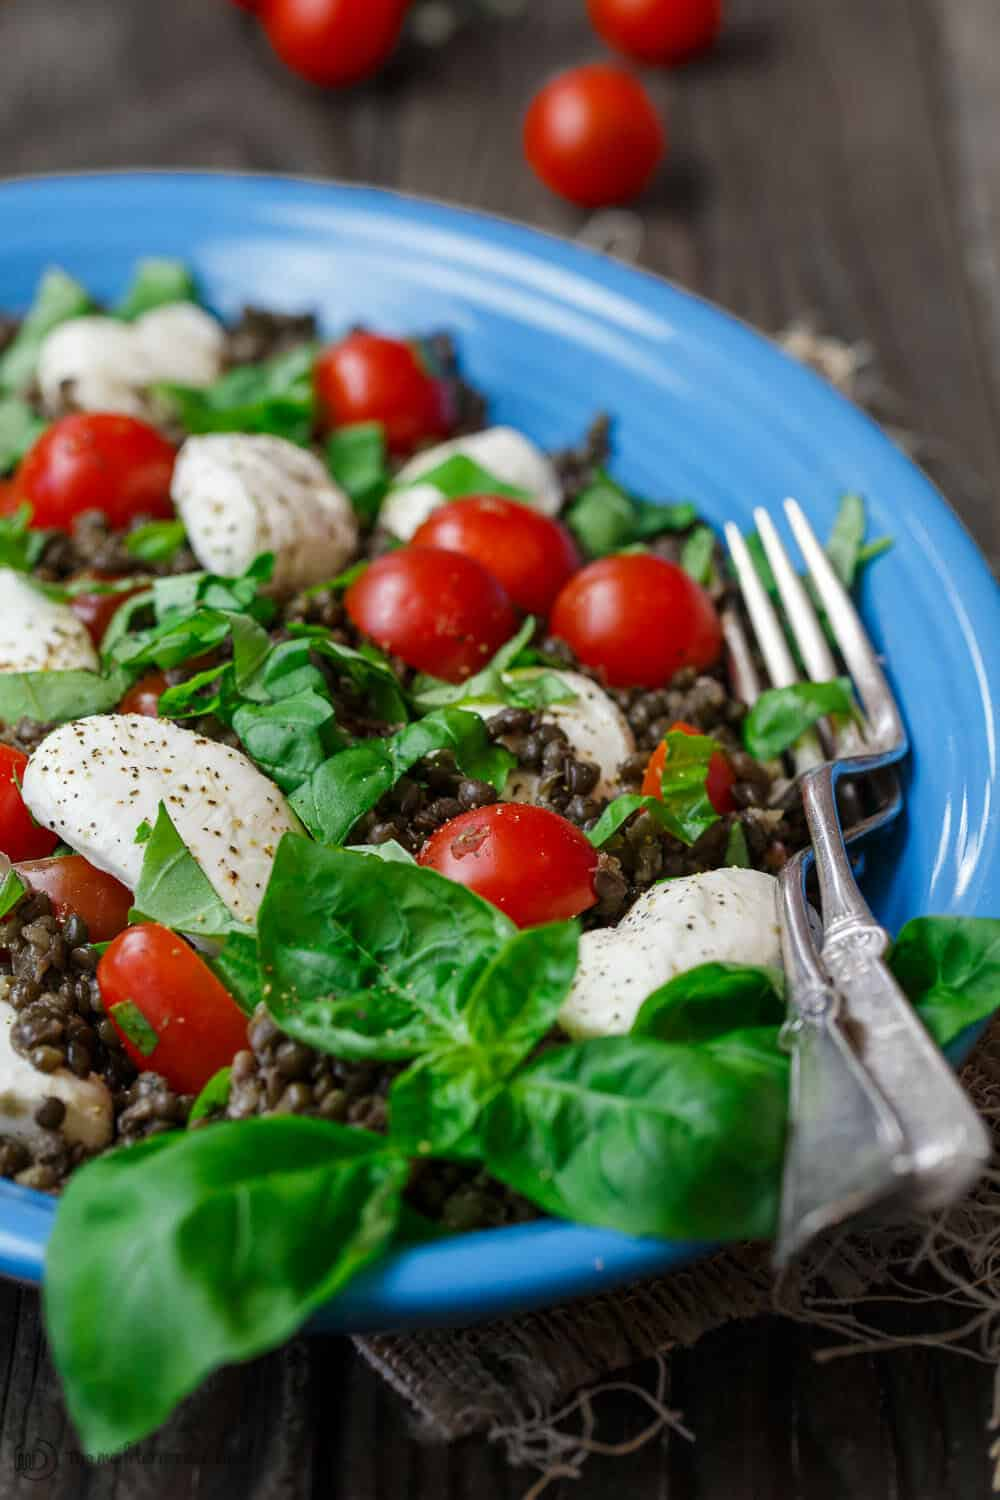 Caprese Lentil Salad garnished with fresh basil leaves